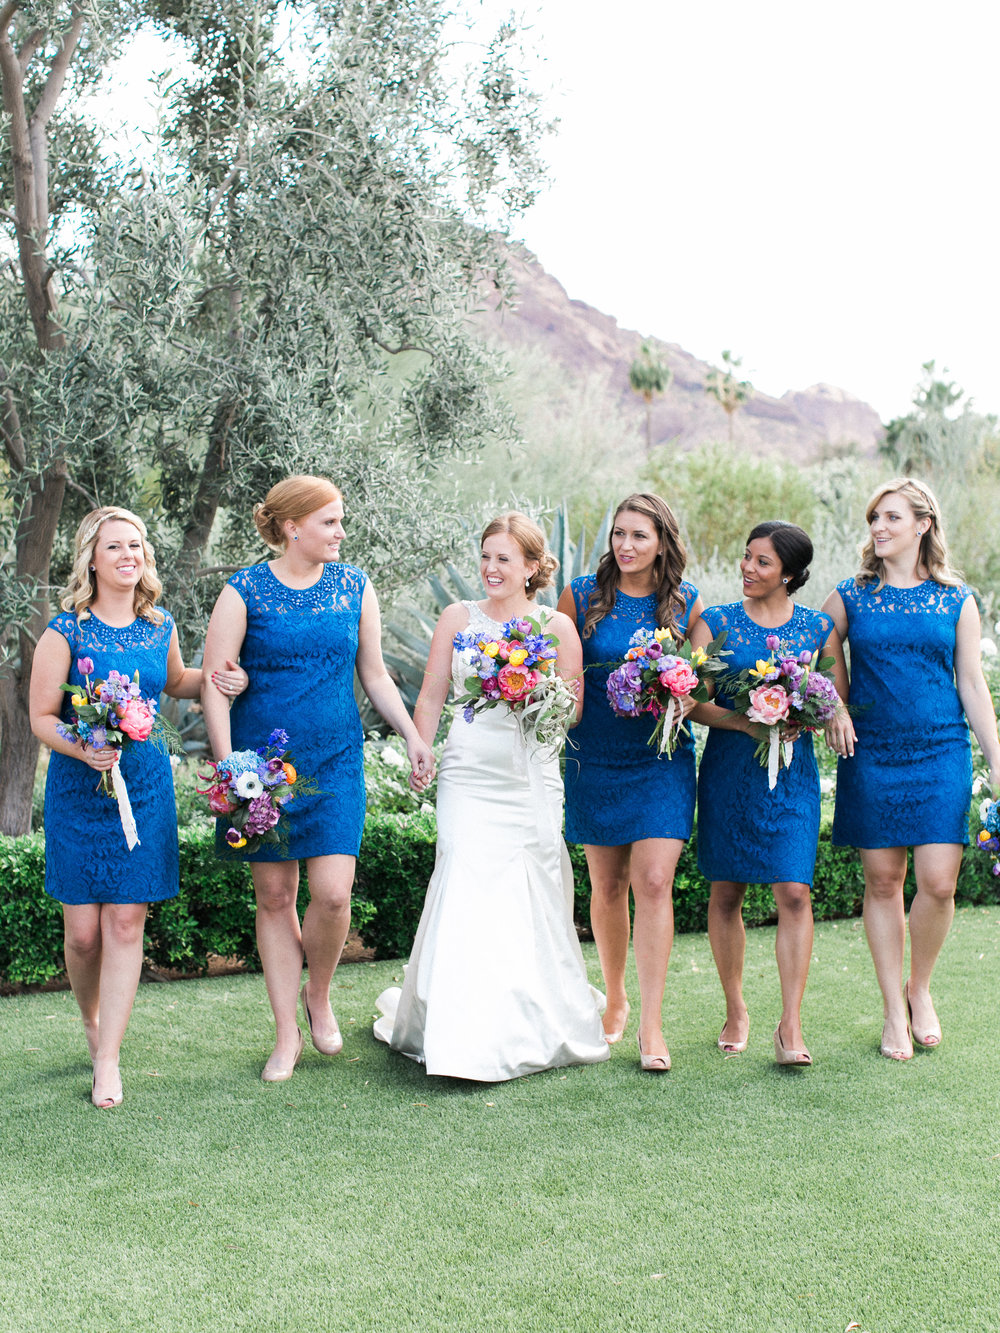 Fiesta Inspired El Chorro Wedding - Bridesmaids